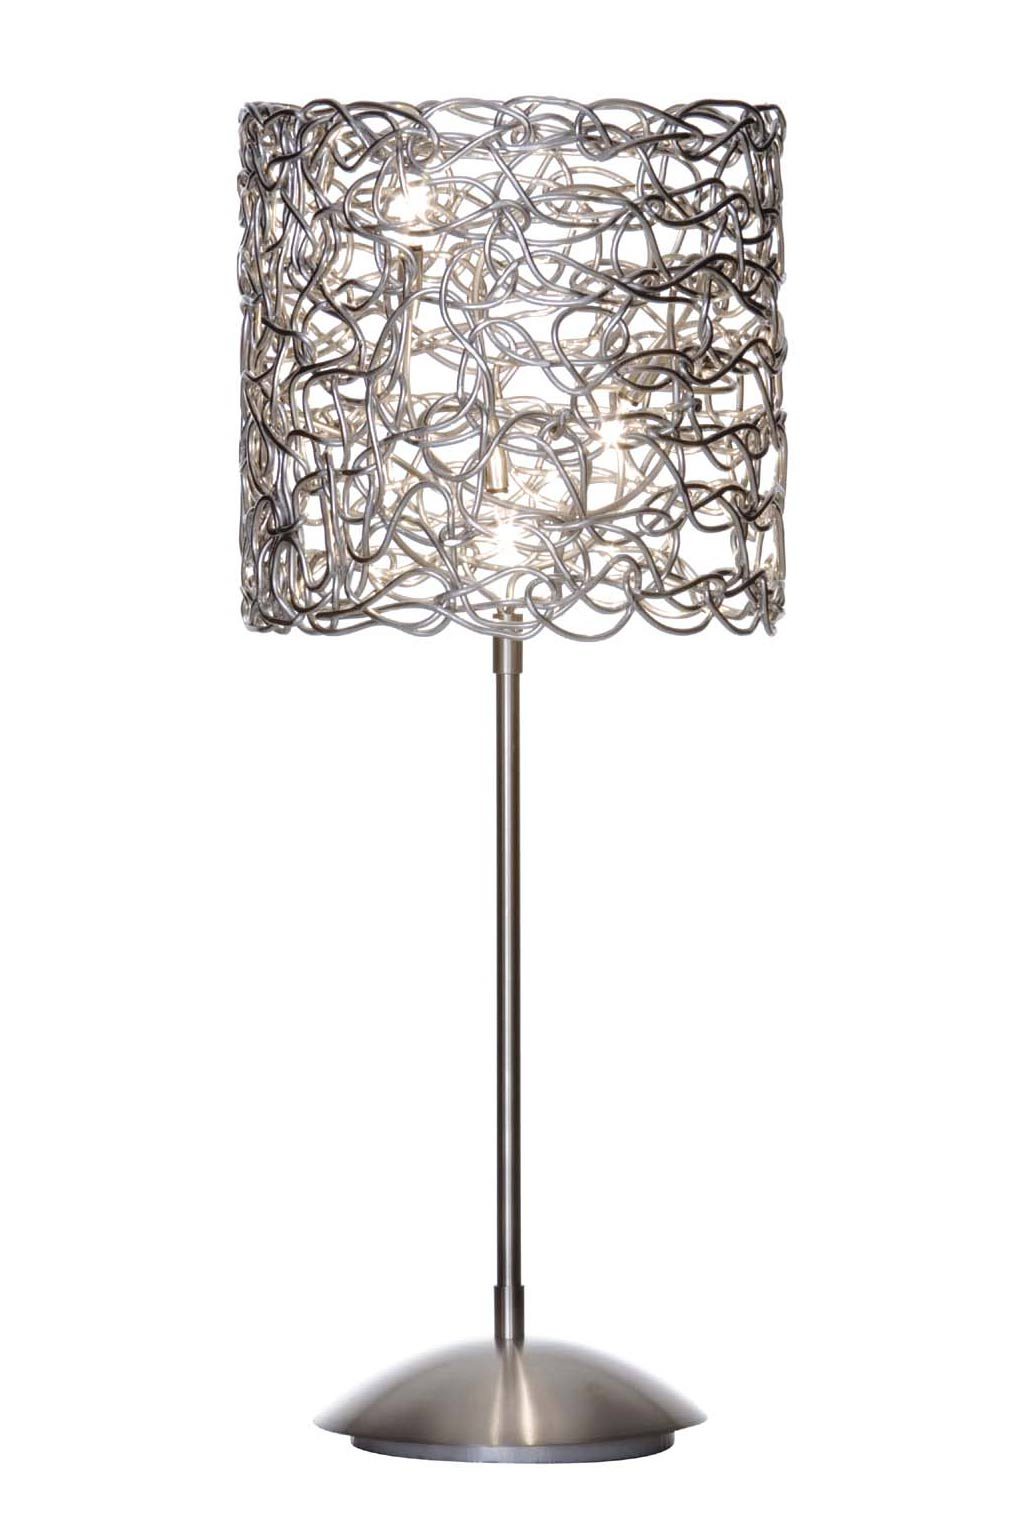 Aluminium wire table lamp images wiring table and diagram sample aluminium wire table lamp keyboard keysfo Gallery